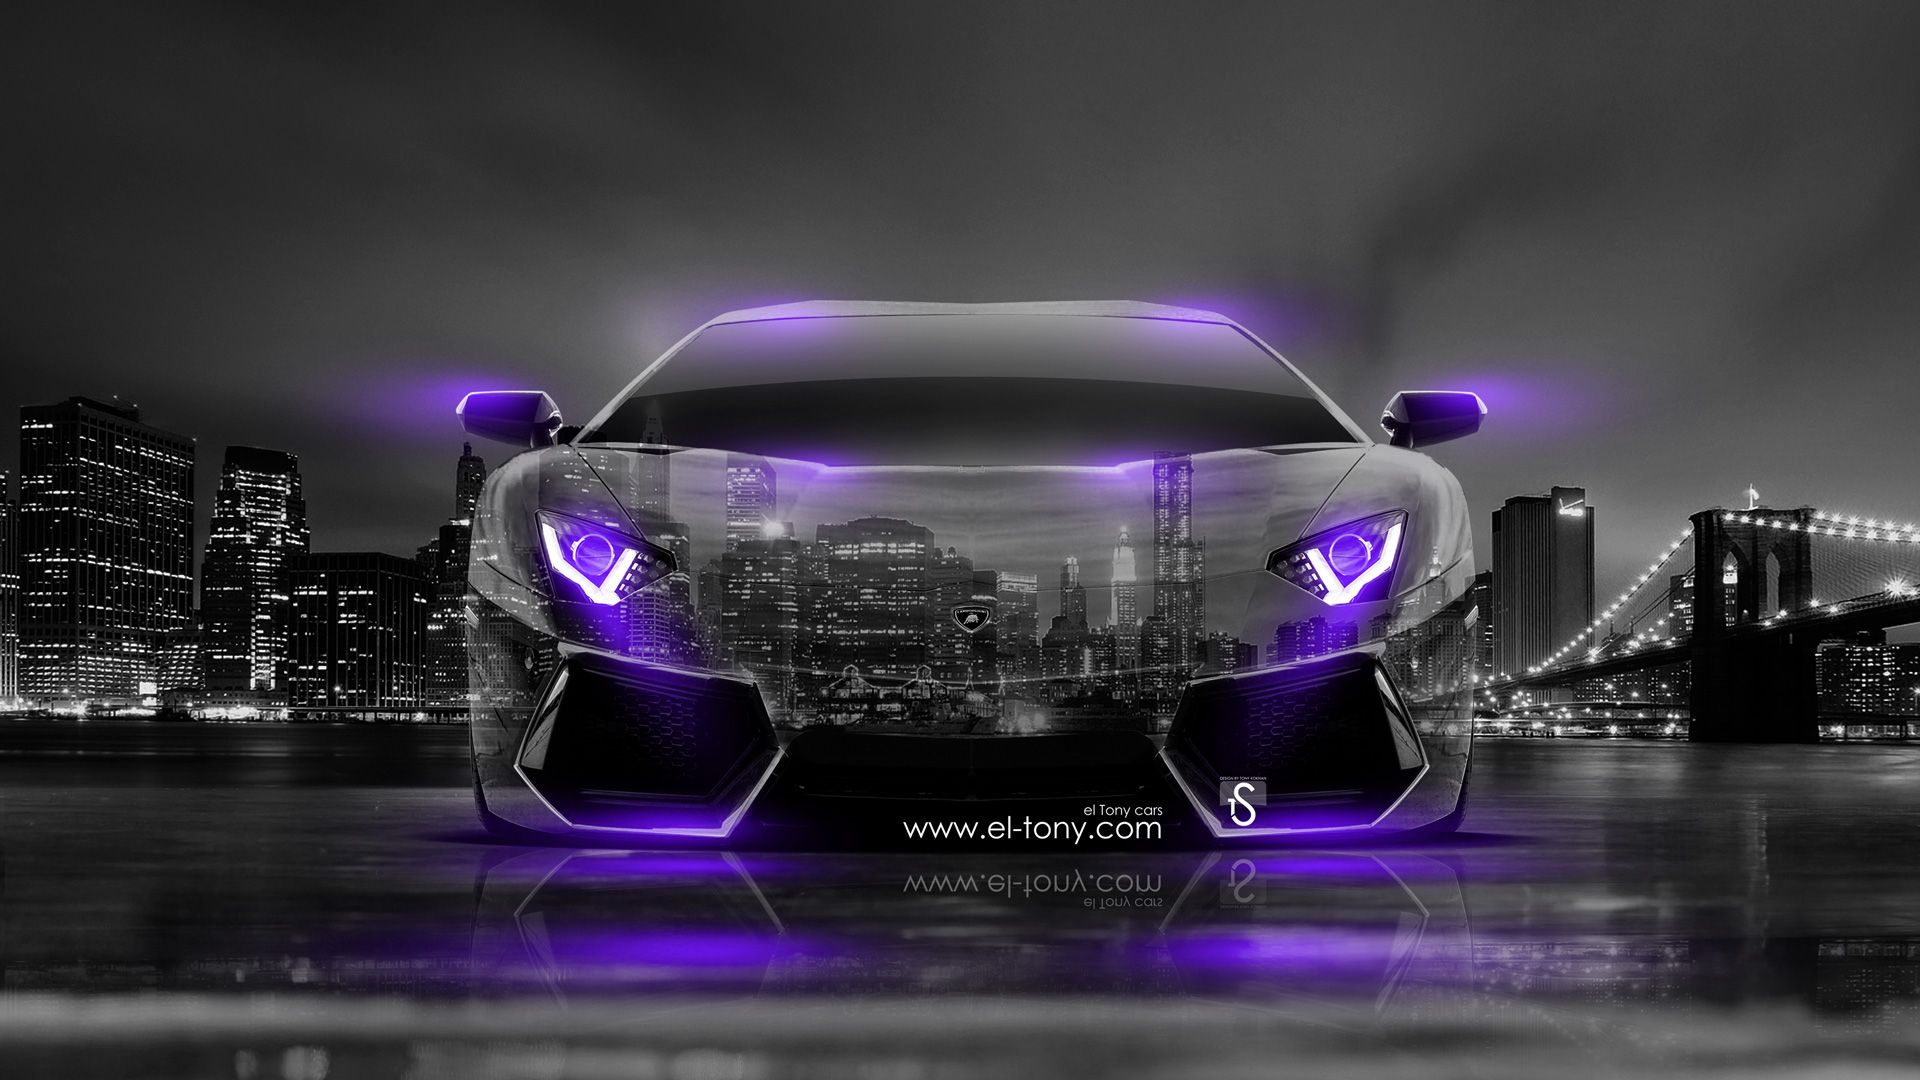 Genial Black Lamborghini With Neon Blue Lights | Lamborghini Aventador Front  Crystal City